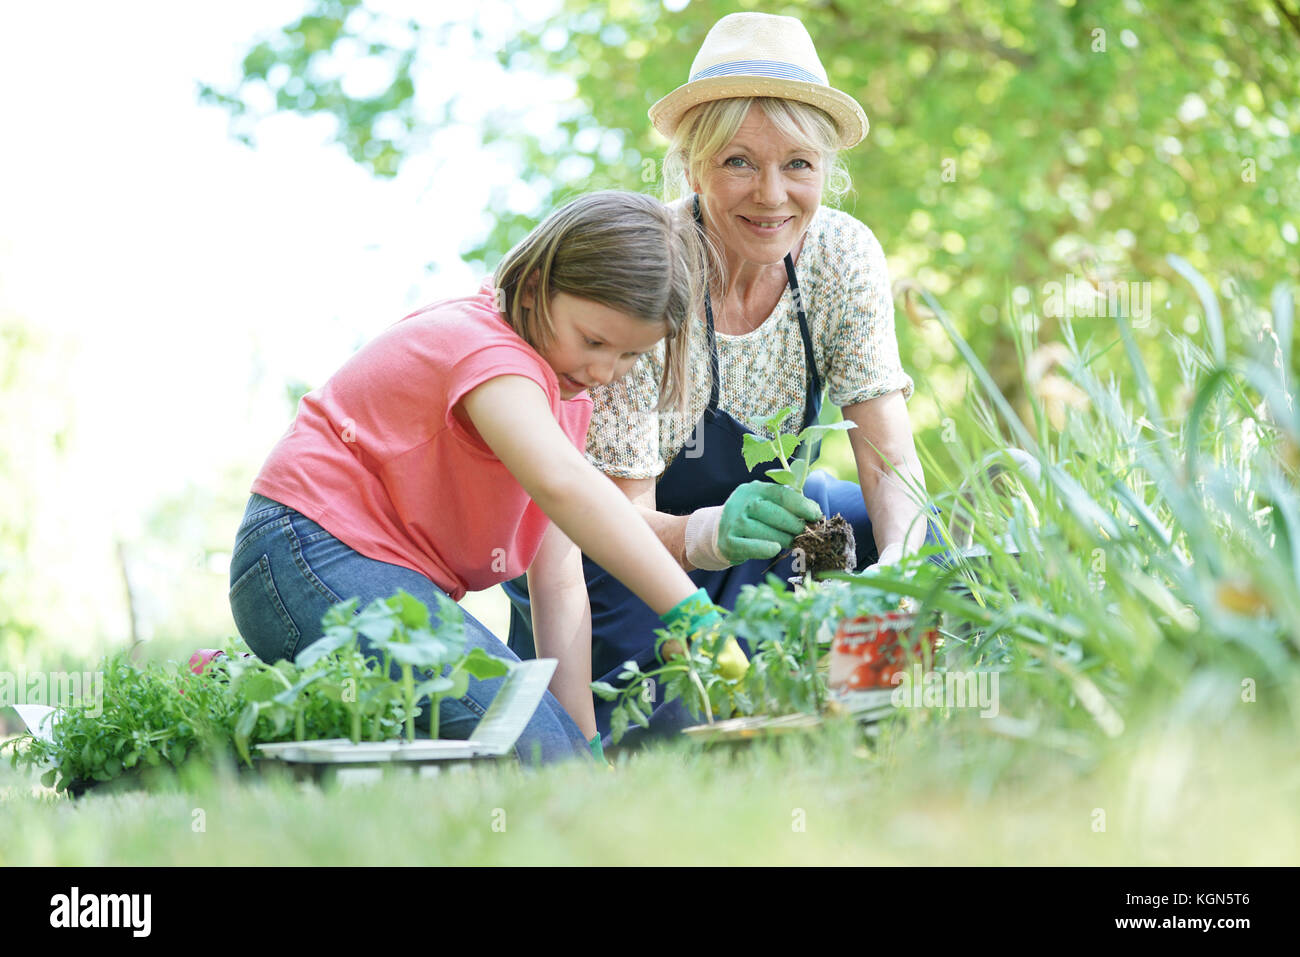 Grand-mère et petite-fille gardening together Photo Stock